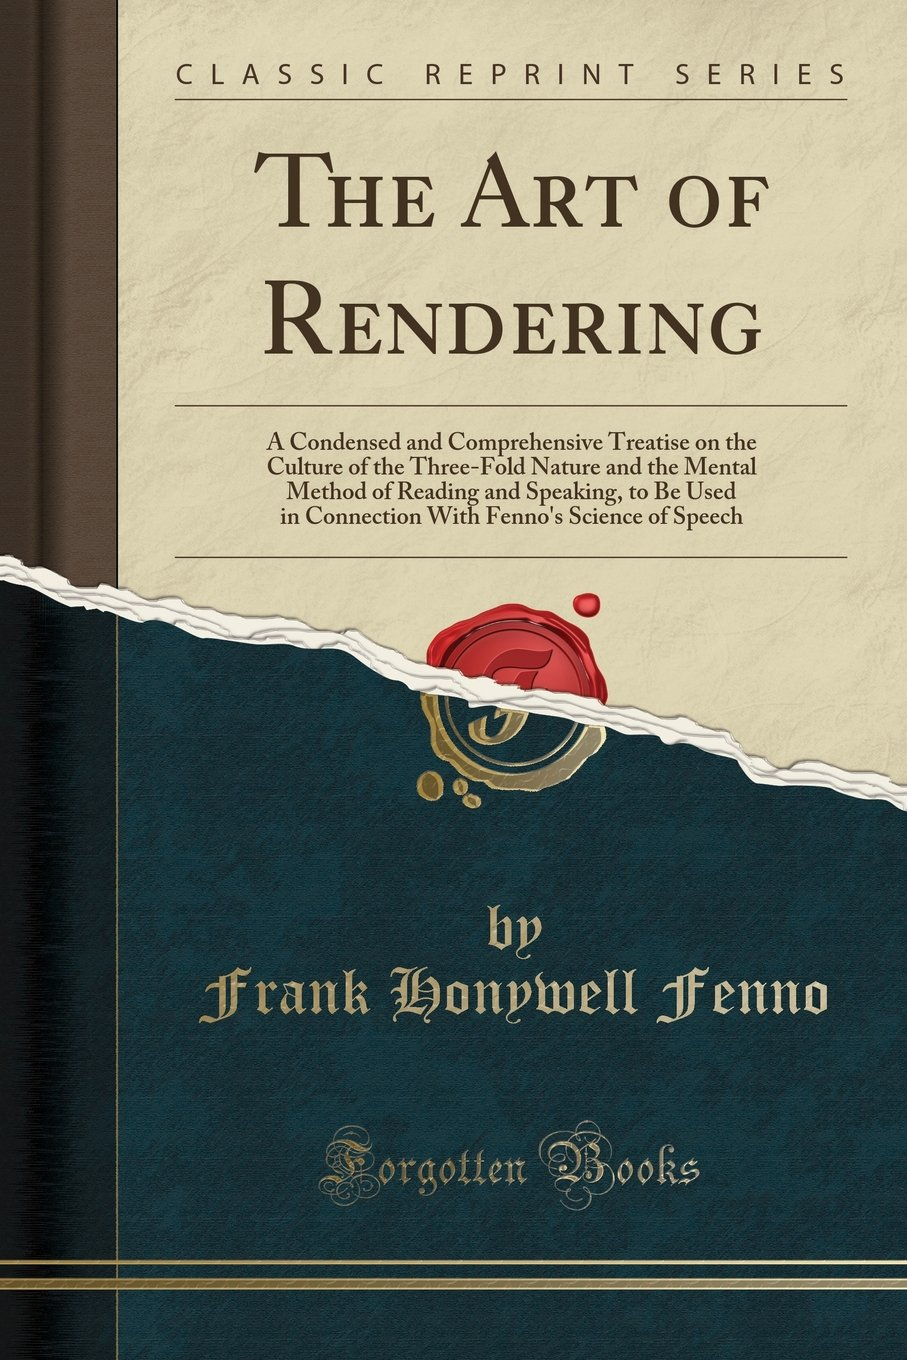 Download The Art of Rendering: A Condensed and Comprehensive Treatise on the Culture of the Three-Fold Nature and the Mental Method of Reading and Speaking, to ... Fenno's Science of Speech (Classic Reprint) pdf